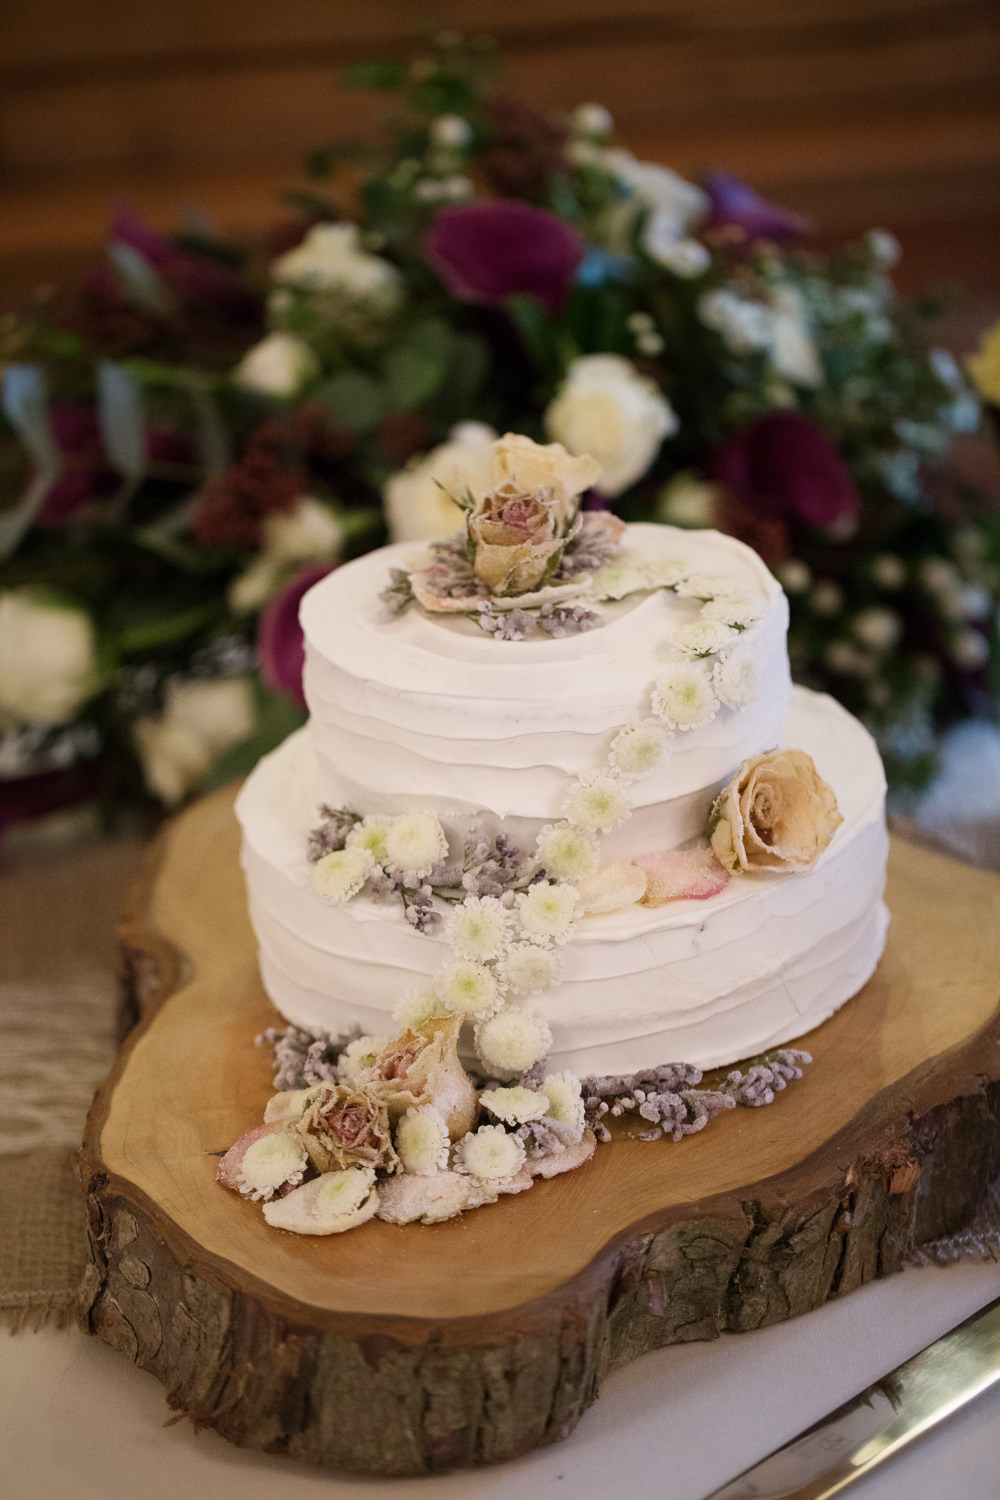 Wedding cake at a Sandhole Oak barn wedding